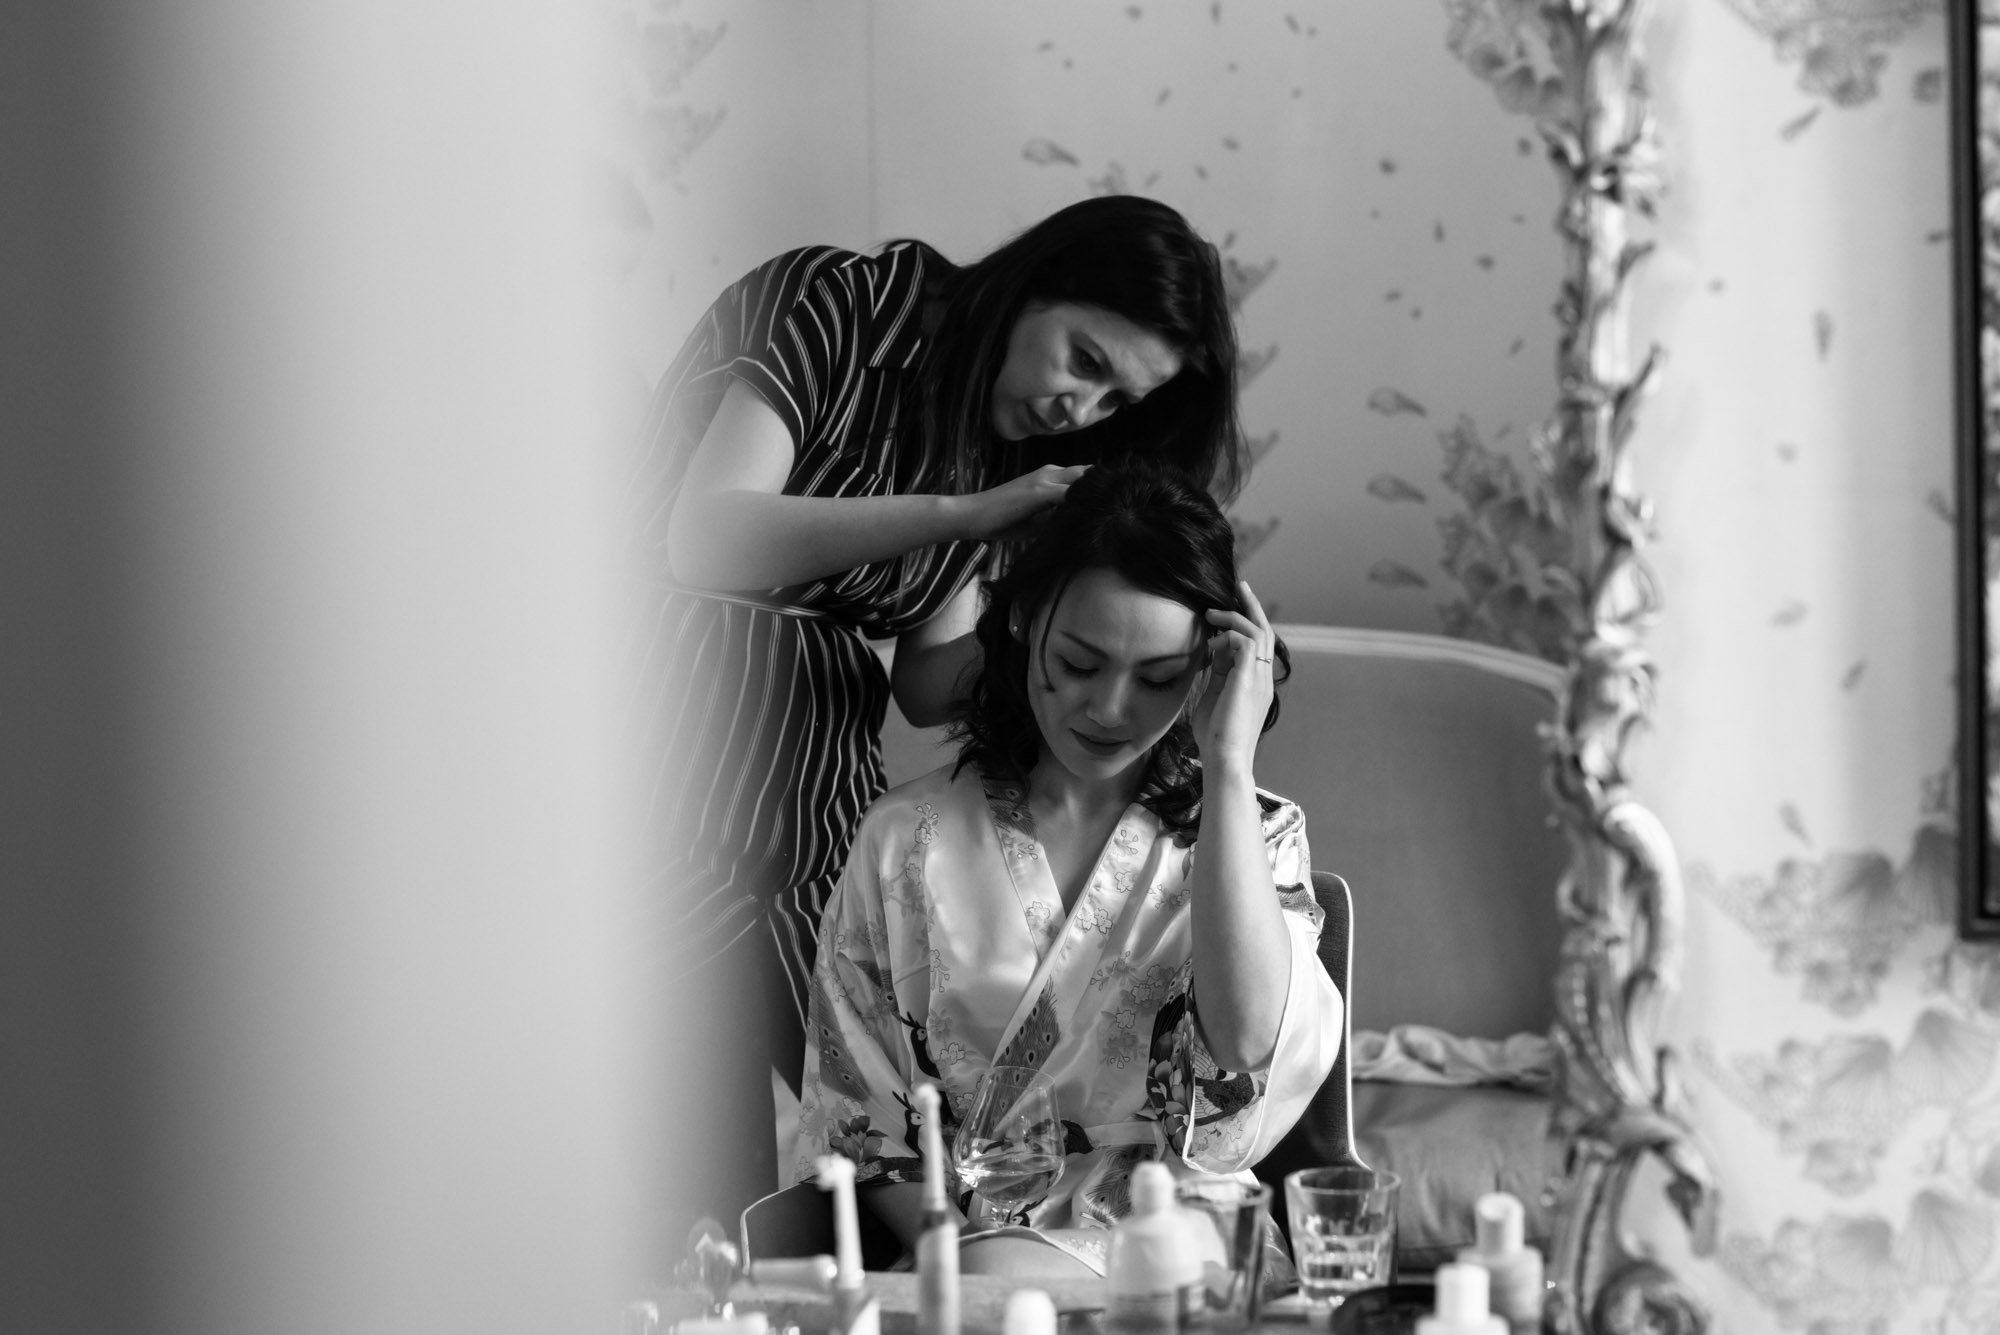 The bridesmaid sits and moves her hair away from her face as she has her hair done ready for the wedding.